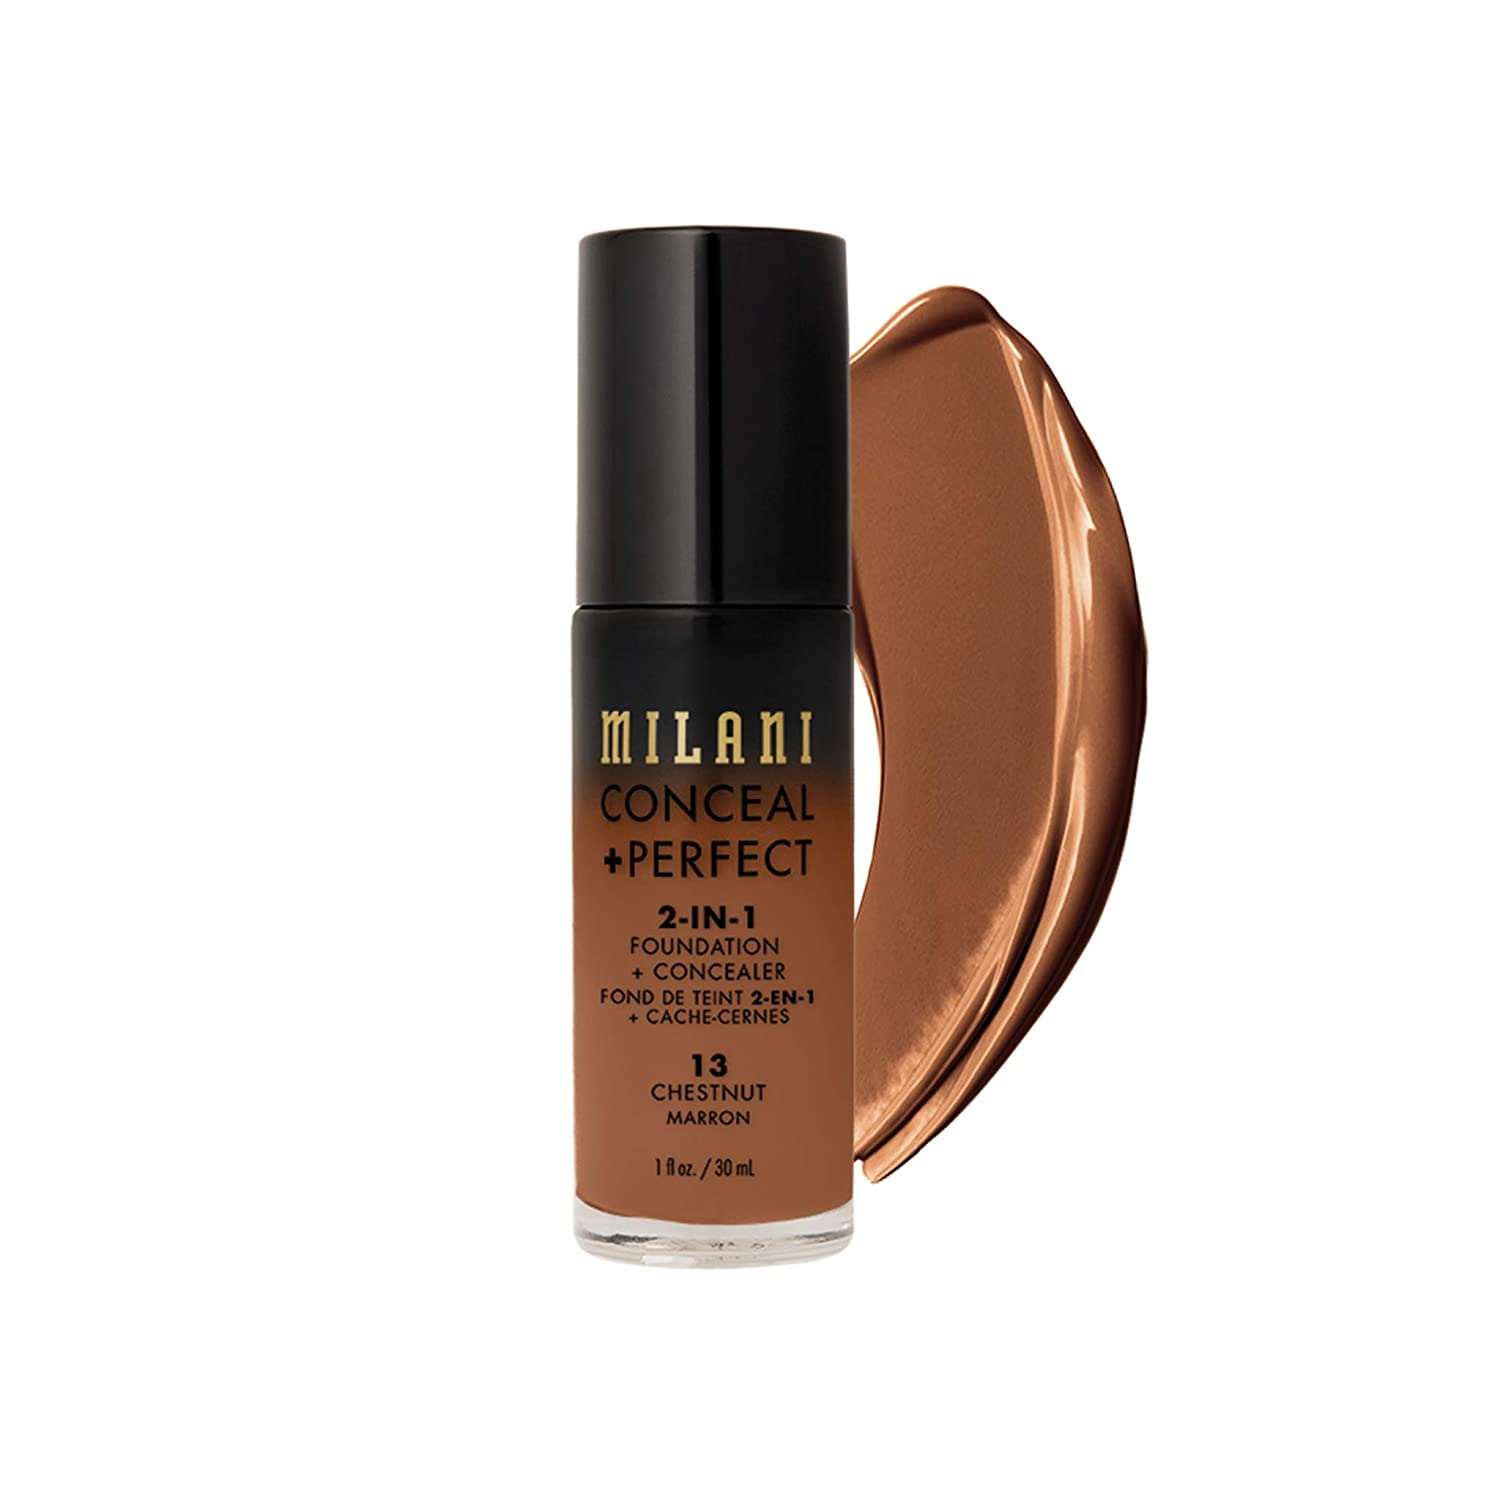 Milani Conceal + Perfect 2-in-1 Foundation + Concealer - Chestnut (1 Fl. Oz.) Cruelty-Free Liquid Foundation - Cover Under-Eye Circles, Blemishes & Skin Discoloration for a Flawless Complexion